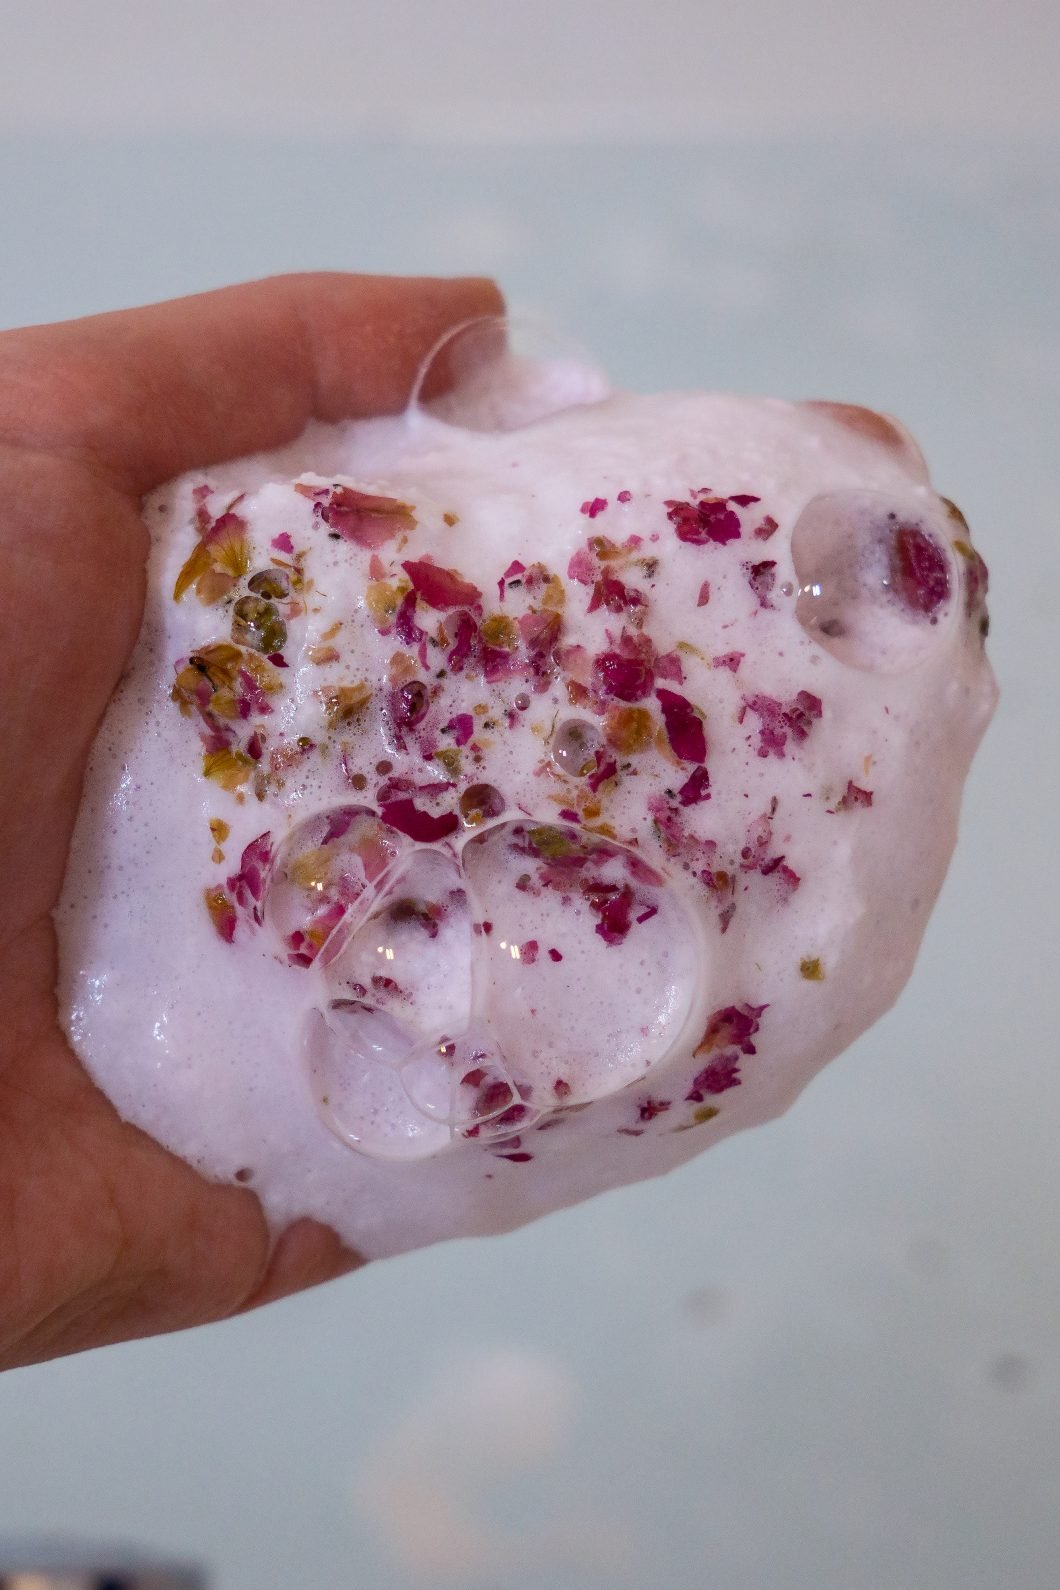 How To Make Bath Bombs Foam - The Makeup Dummy